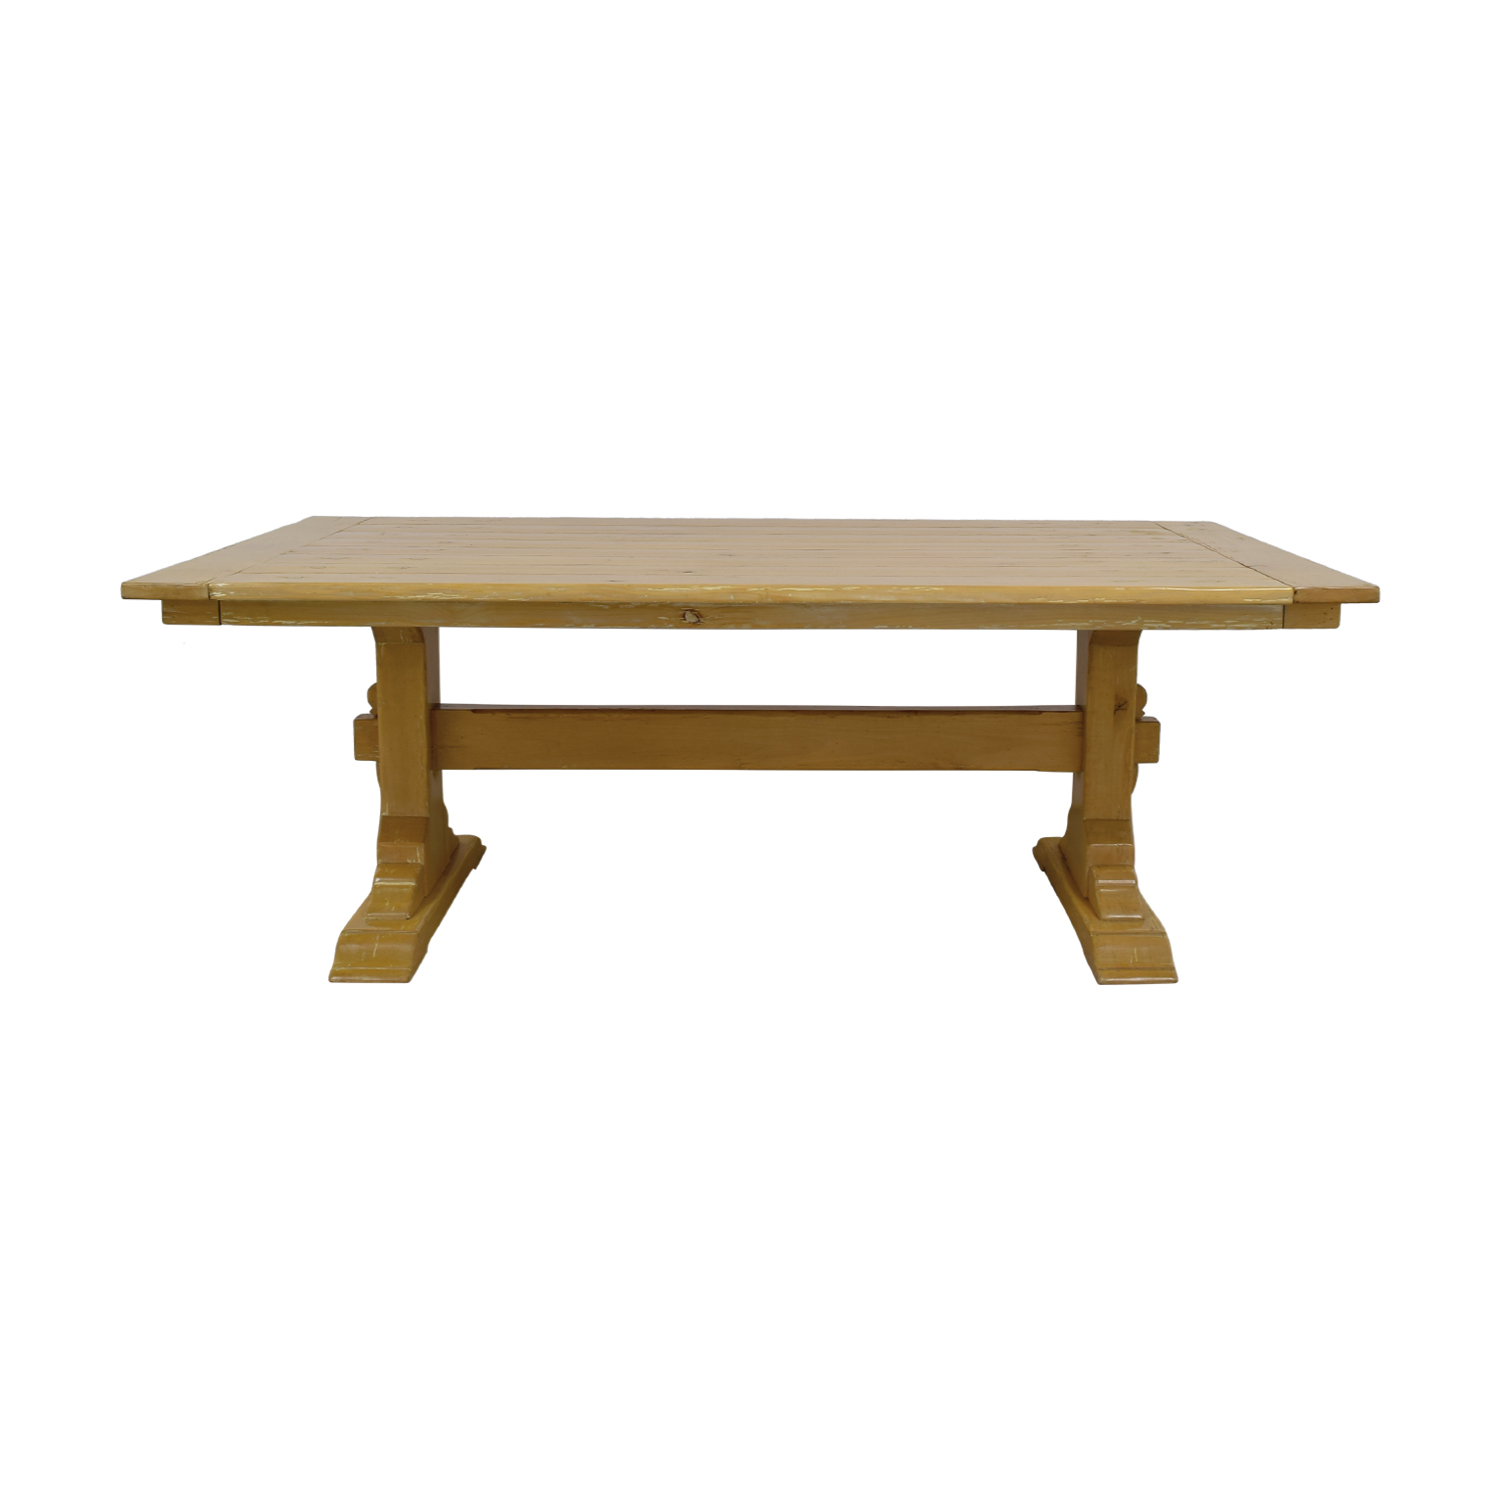 Lexington Avenue Design Center Lexington Avenue Design Center Natural Dining Table nj